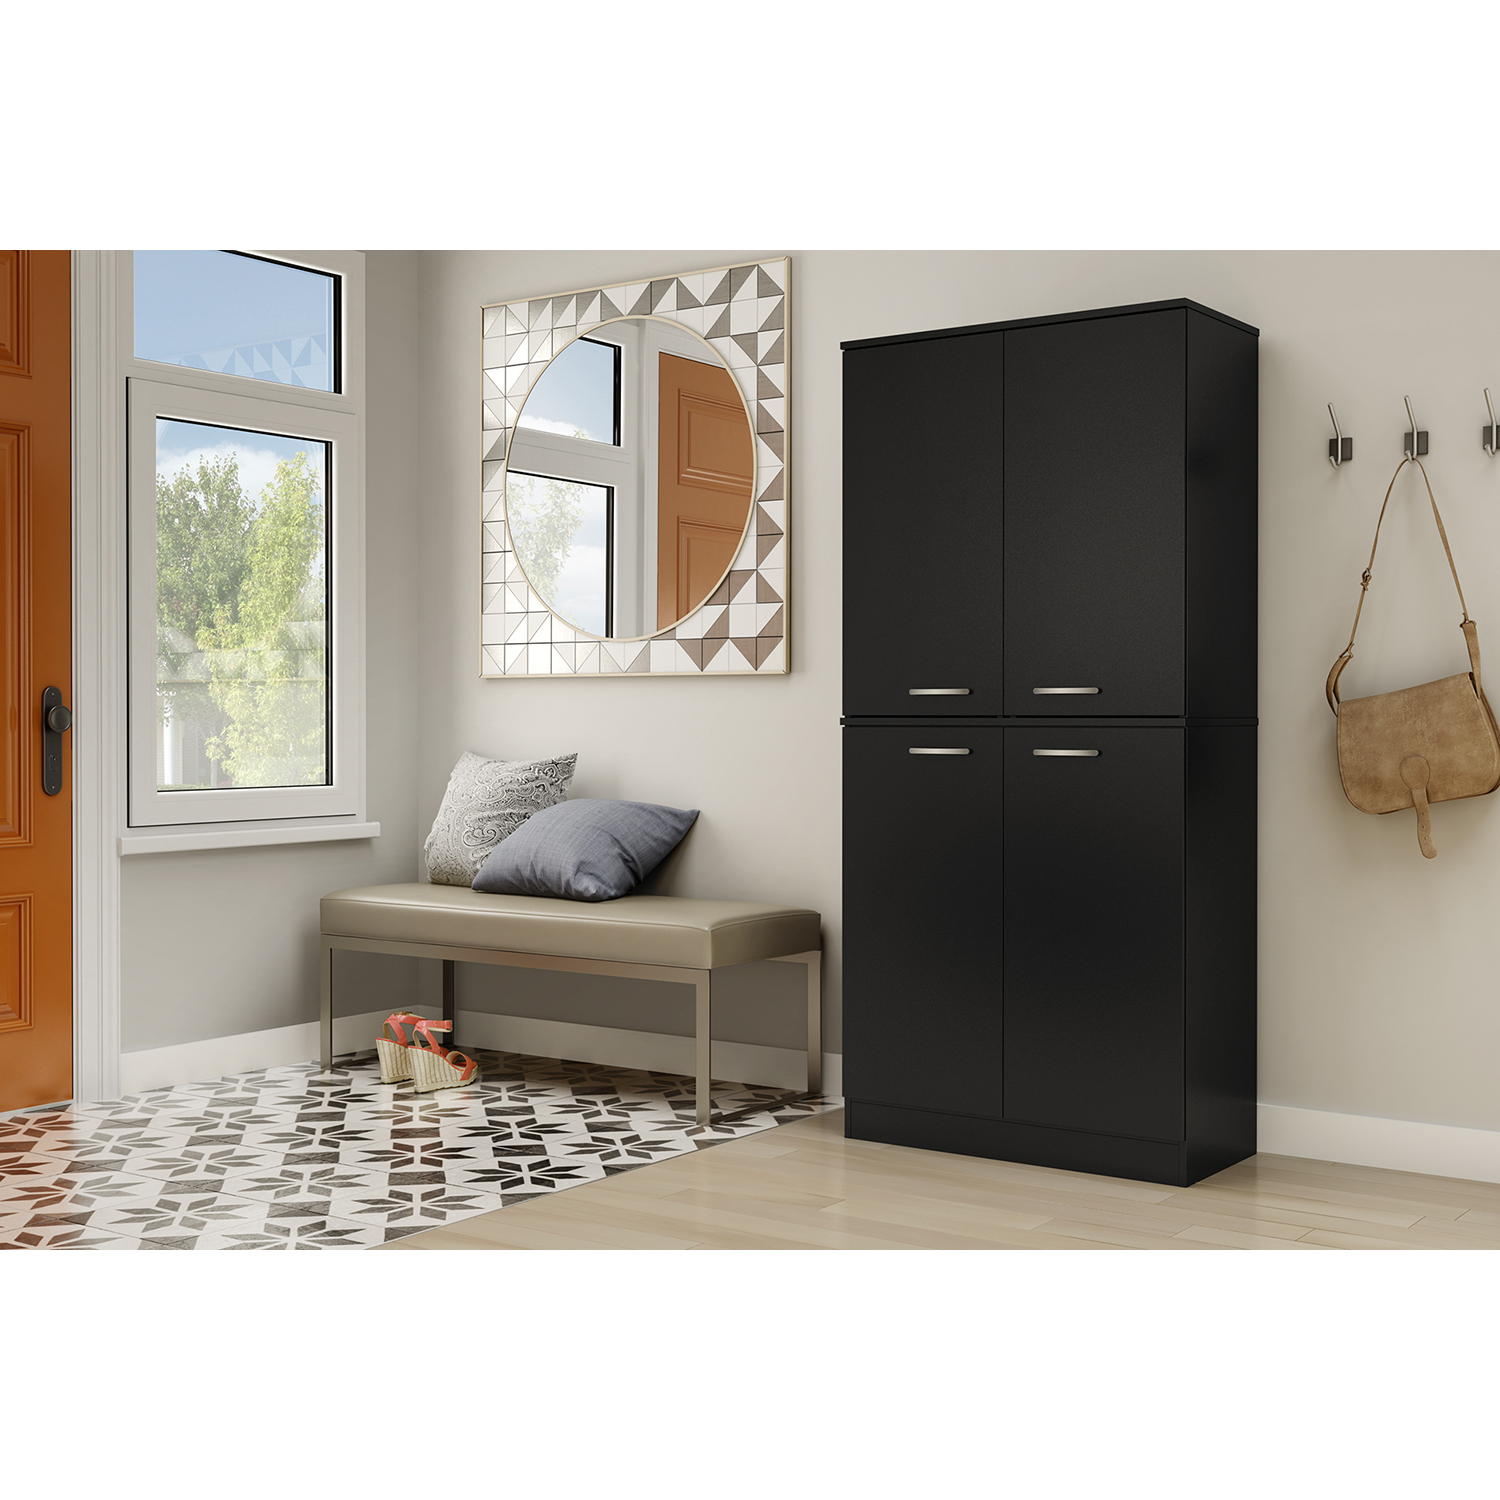 Axess Armoire - 4 Doors, Pure Black - SS-10178